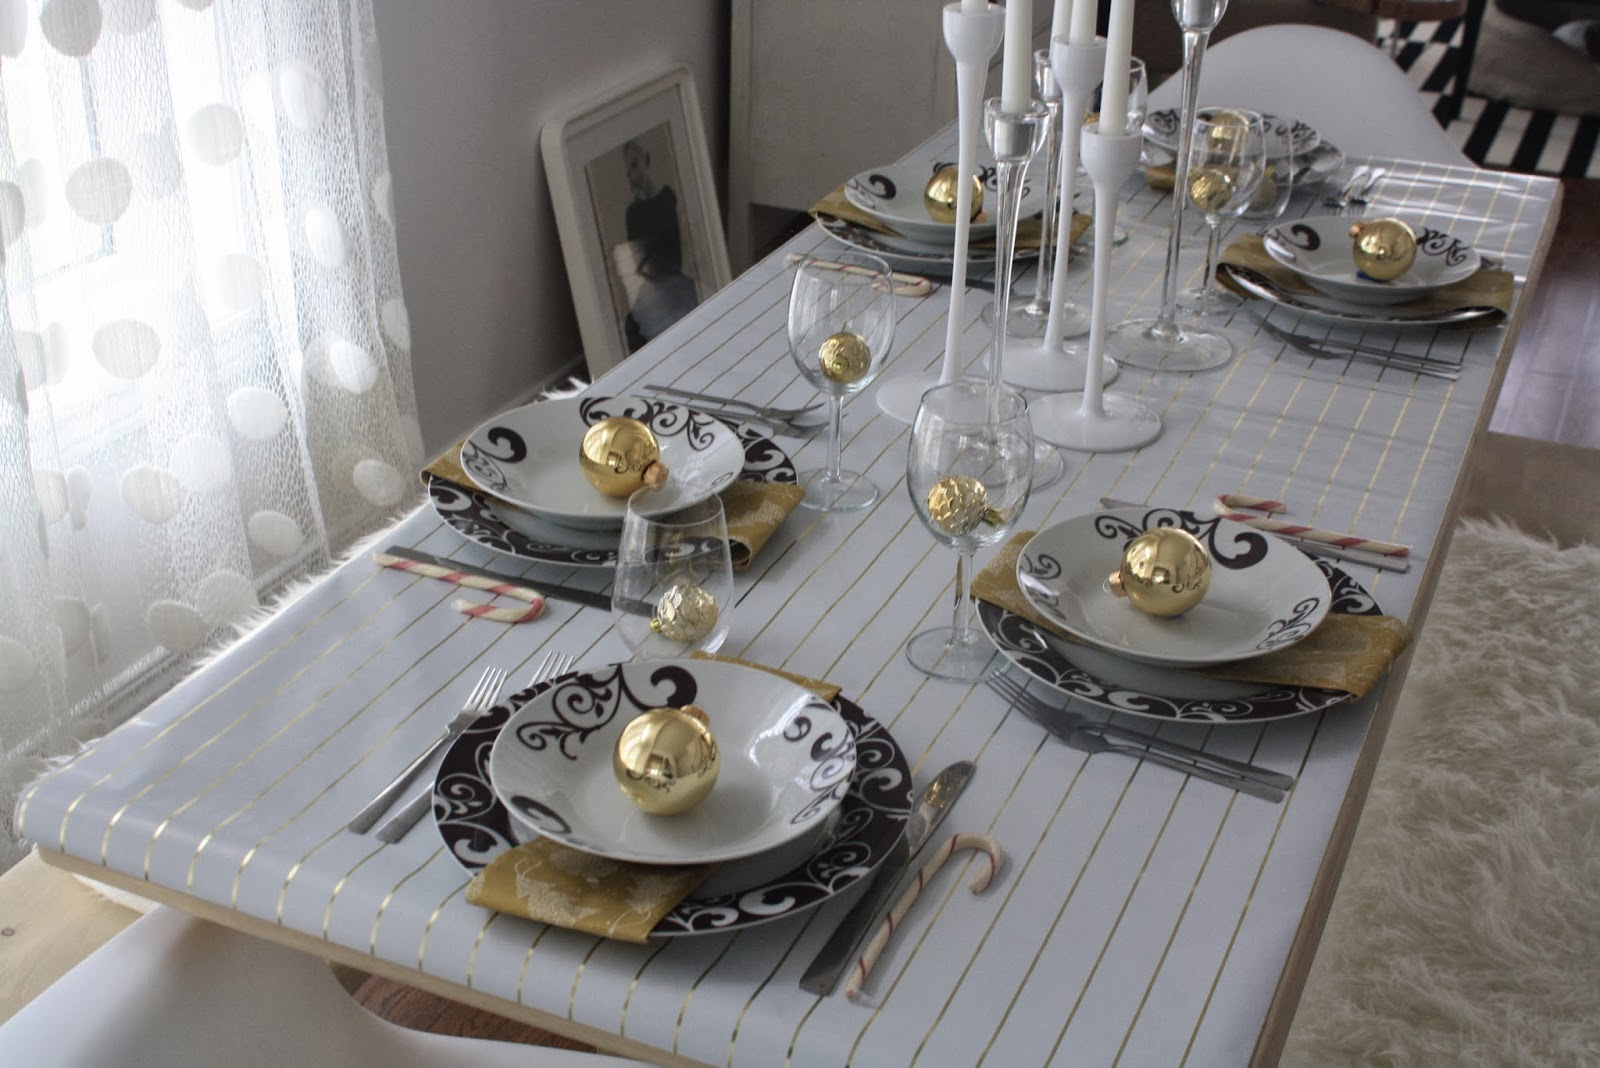 New Year Home Decor 28 Images New Year S Home Decorations Housekeeping New Years Home Decor